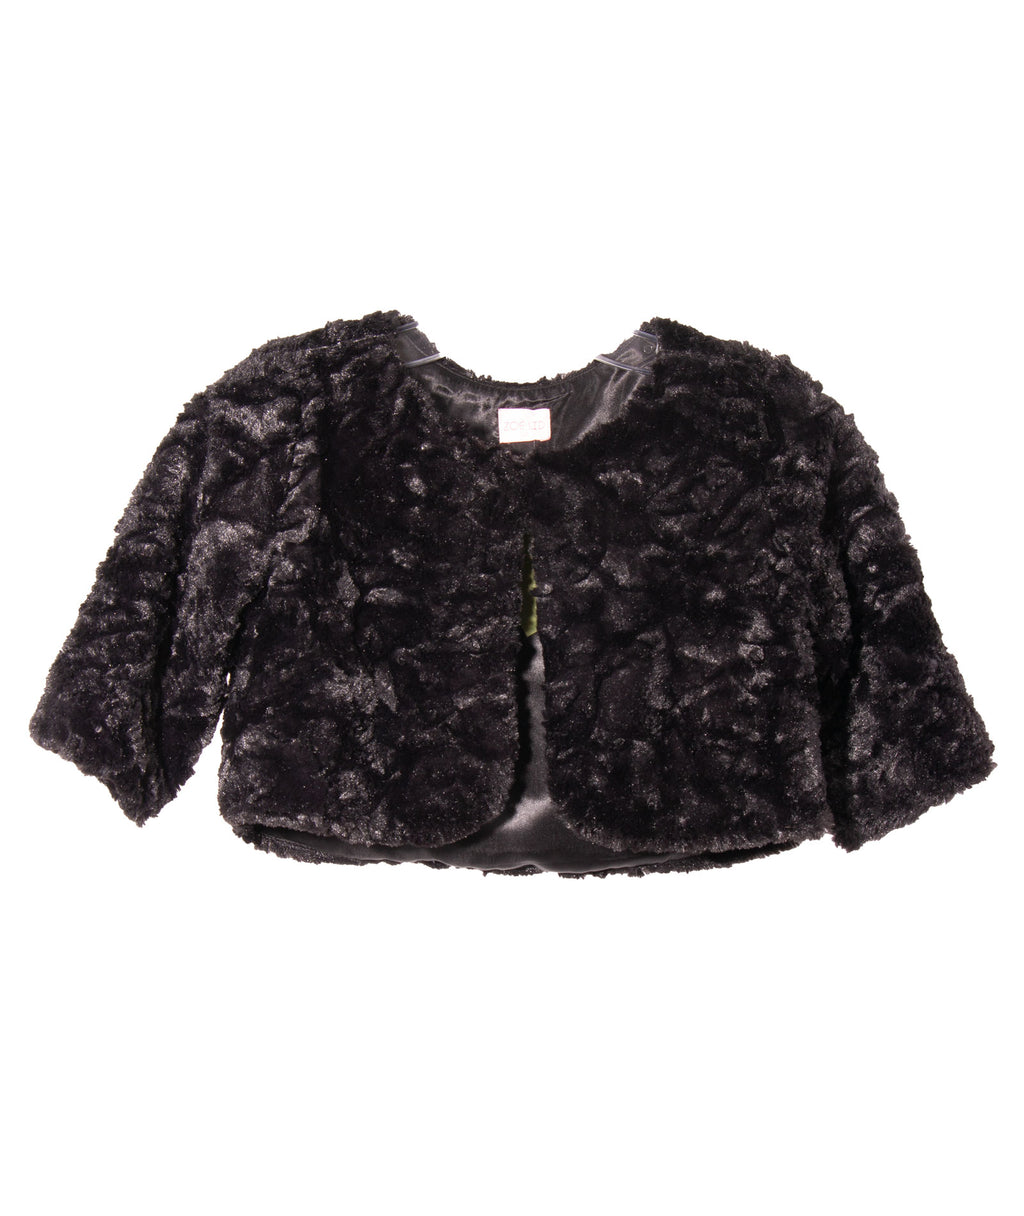 Zoe Ltd. Girls Fur Bolero